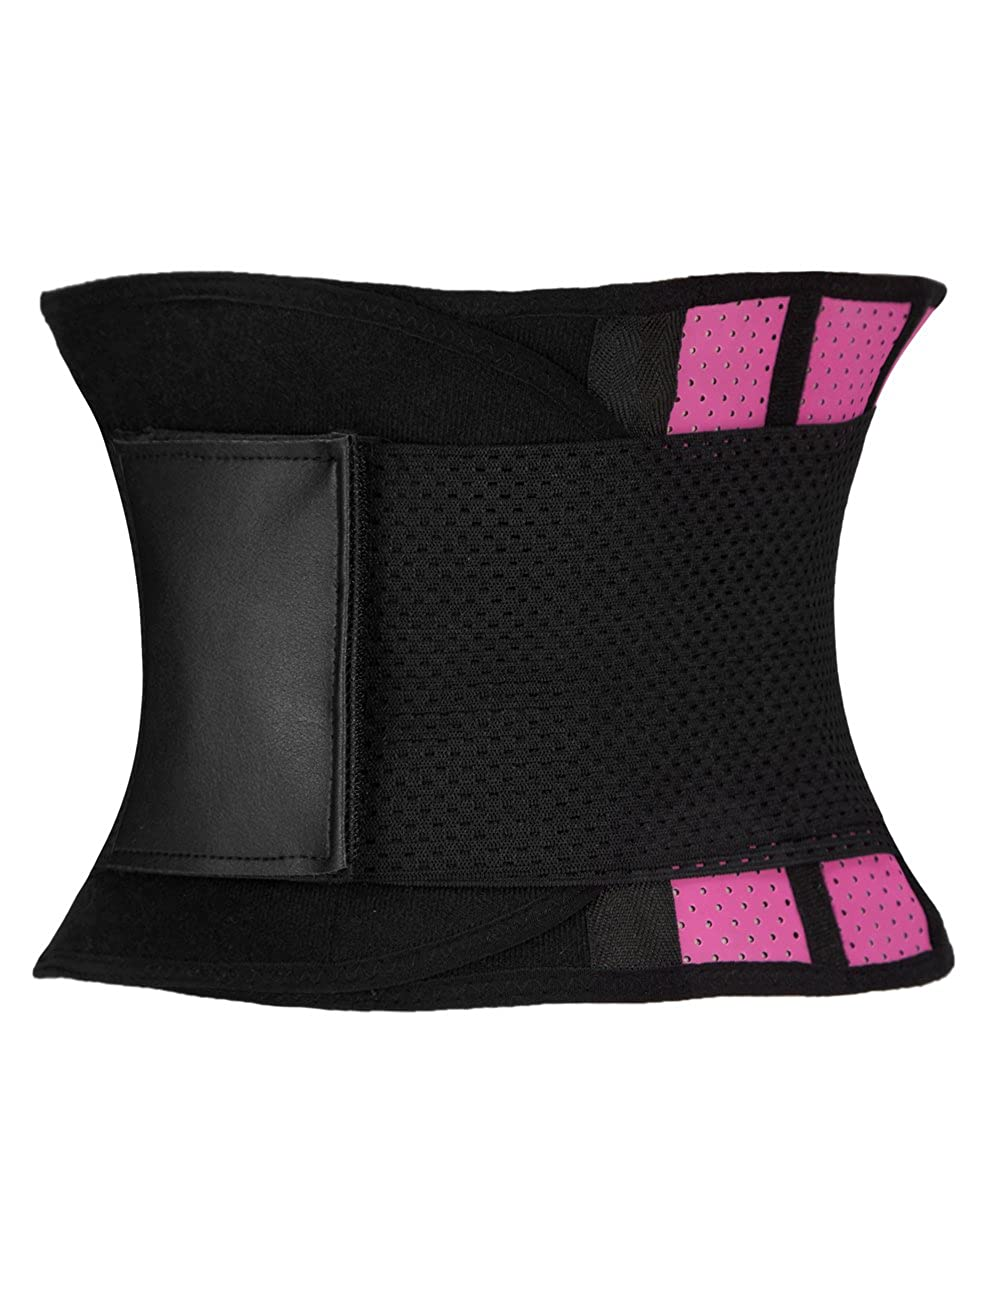 HEYME Waist Trainer Sweat Belt Belly Fat Burner with Breathable Hole for Summer and Workouts Abdominal Slimming Belt for Waist Training Velcro Adjustable Plus Size 3XL